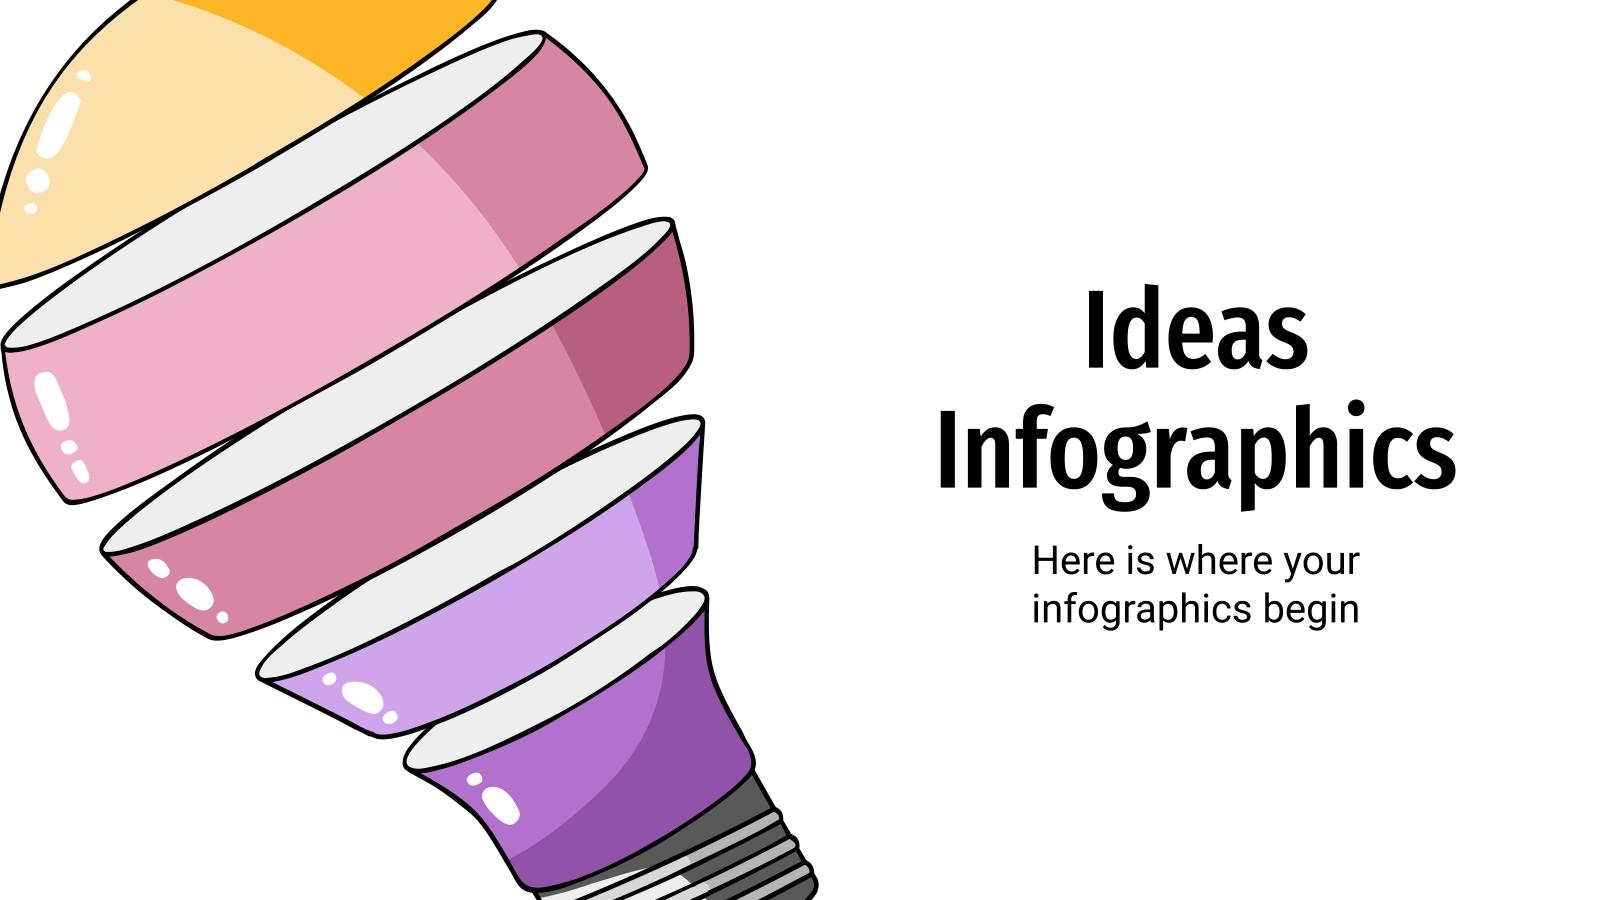 Ideas Infographics presentation template